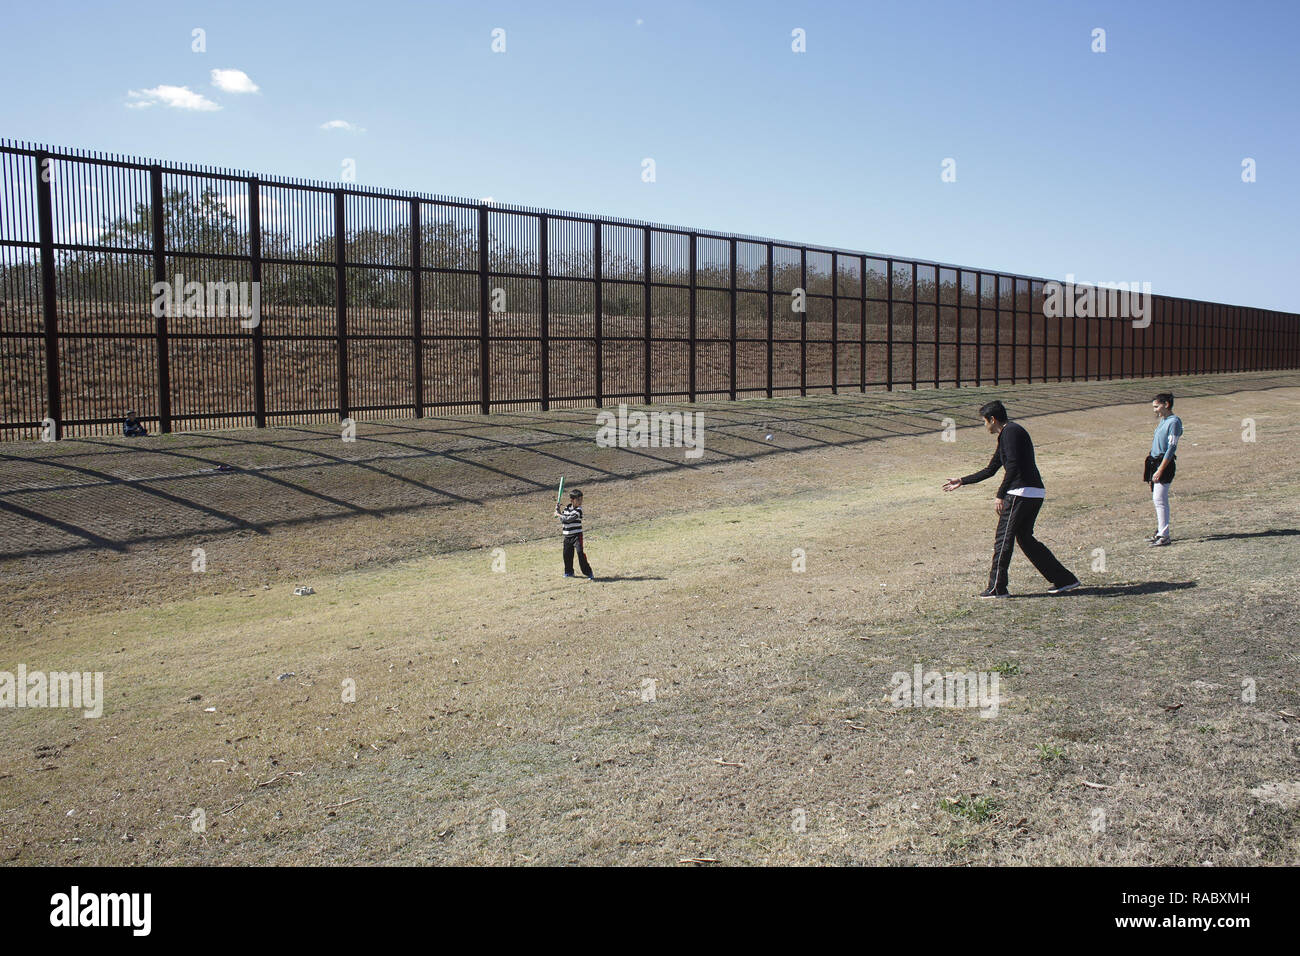 Brownsville Texas Border Fence Stock Photos Amp Brownsville